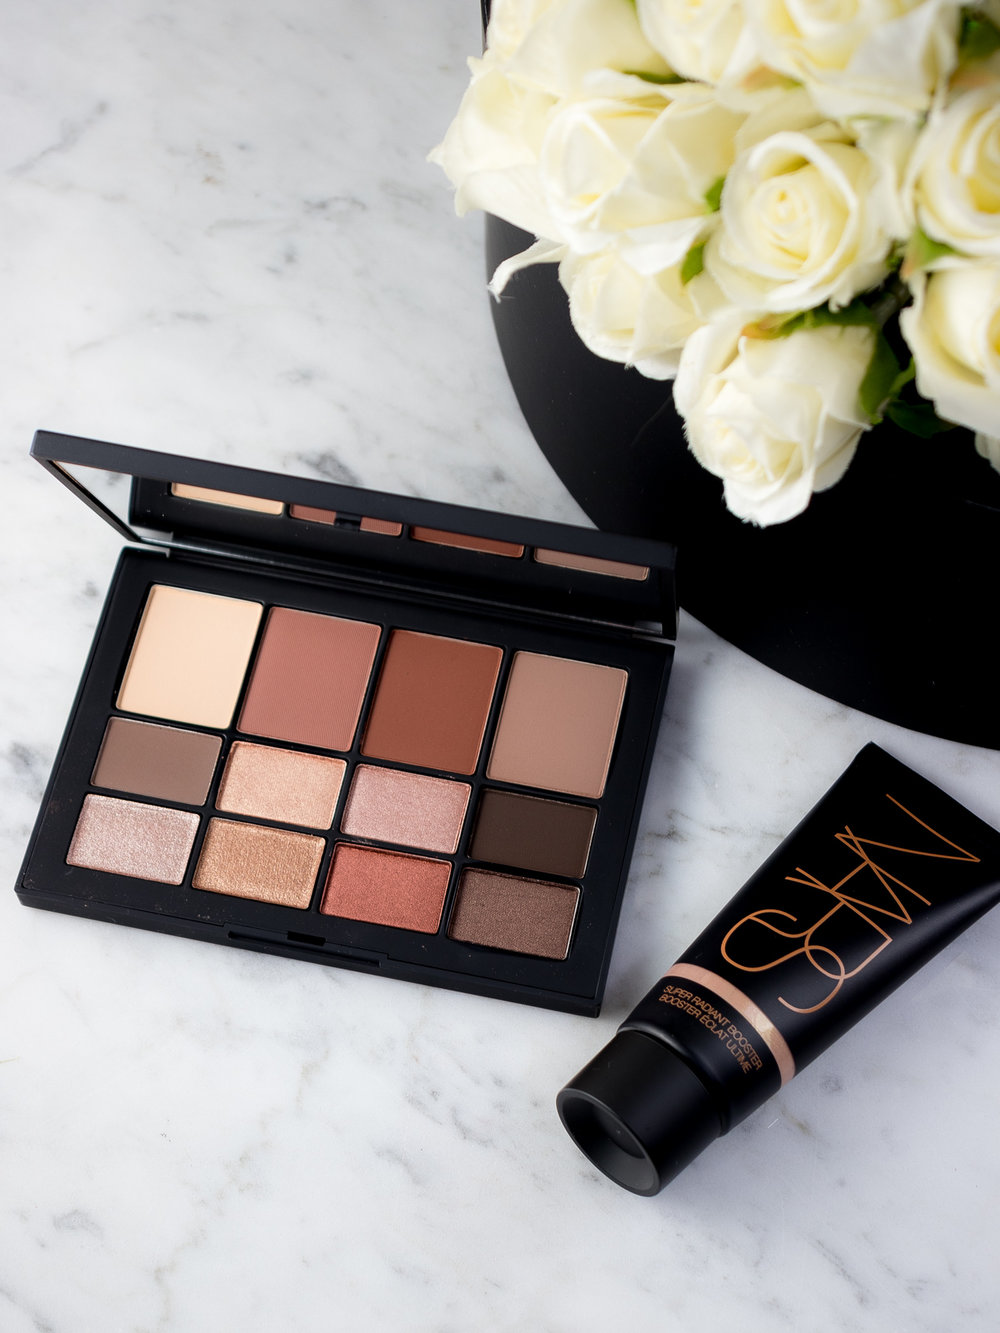 NARS Skin Deep Eye Palette and NARS Super Radiant Booster